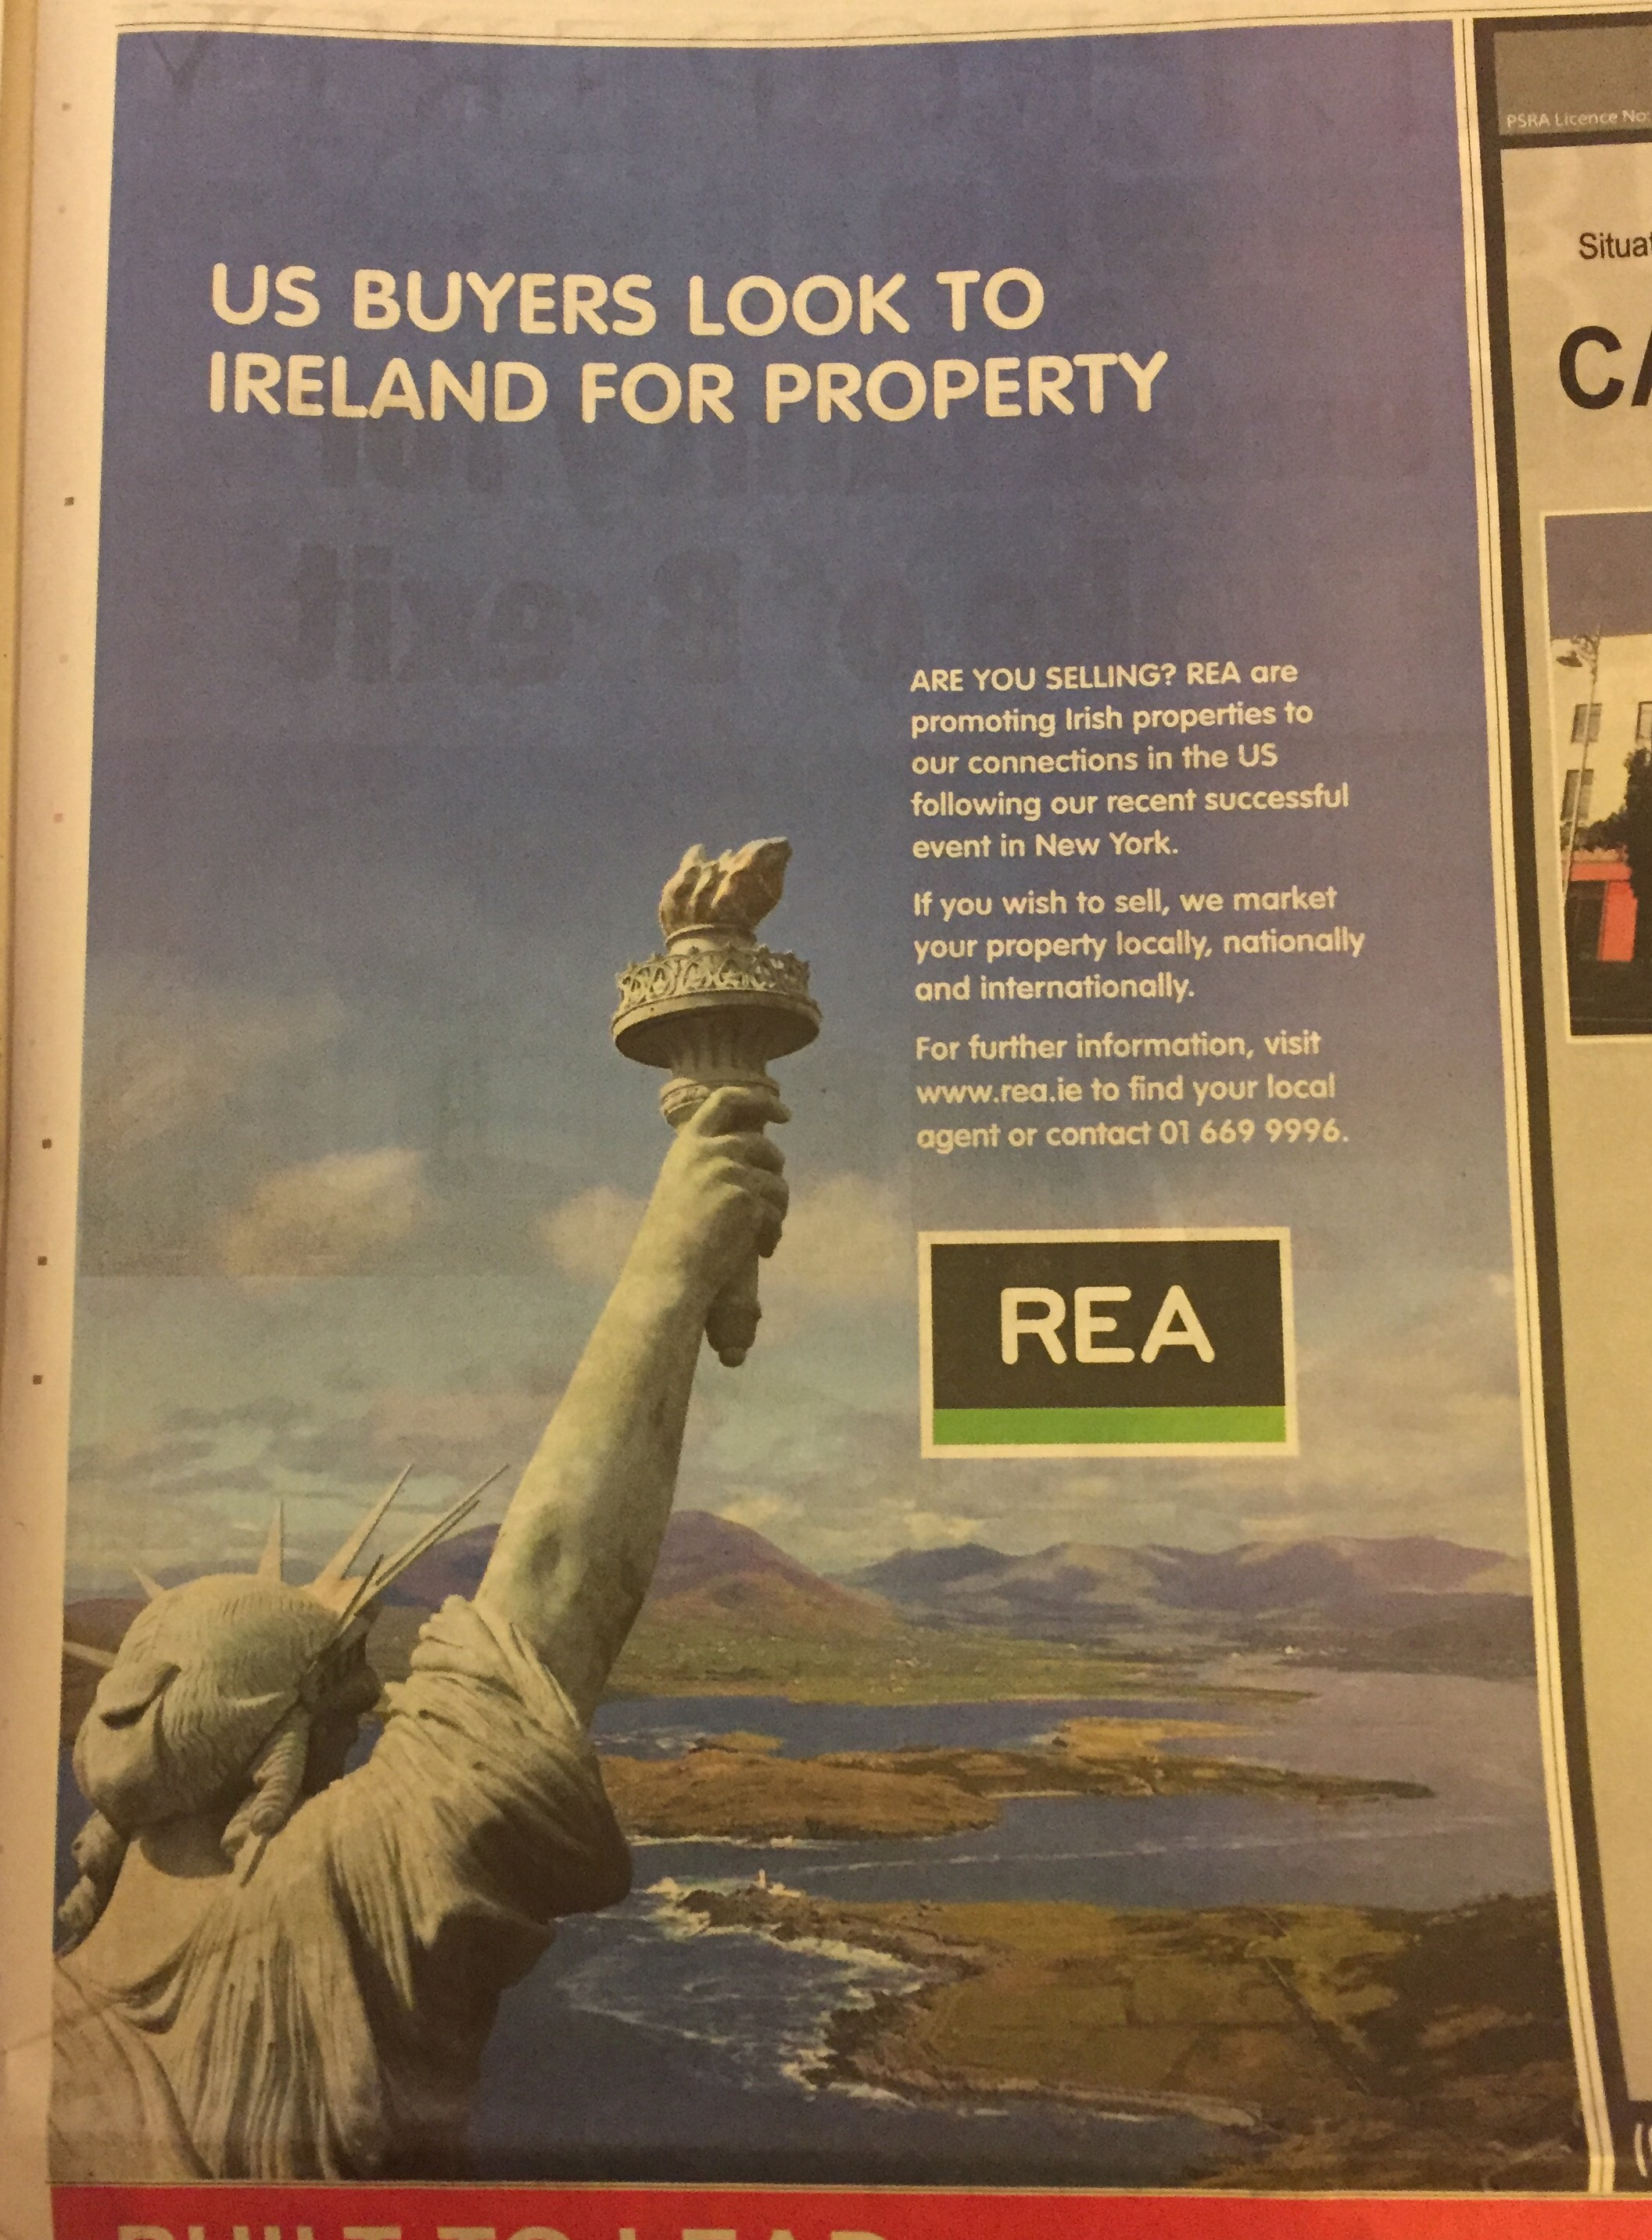 REA – US buyers look to ireland for property